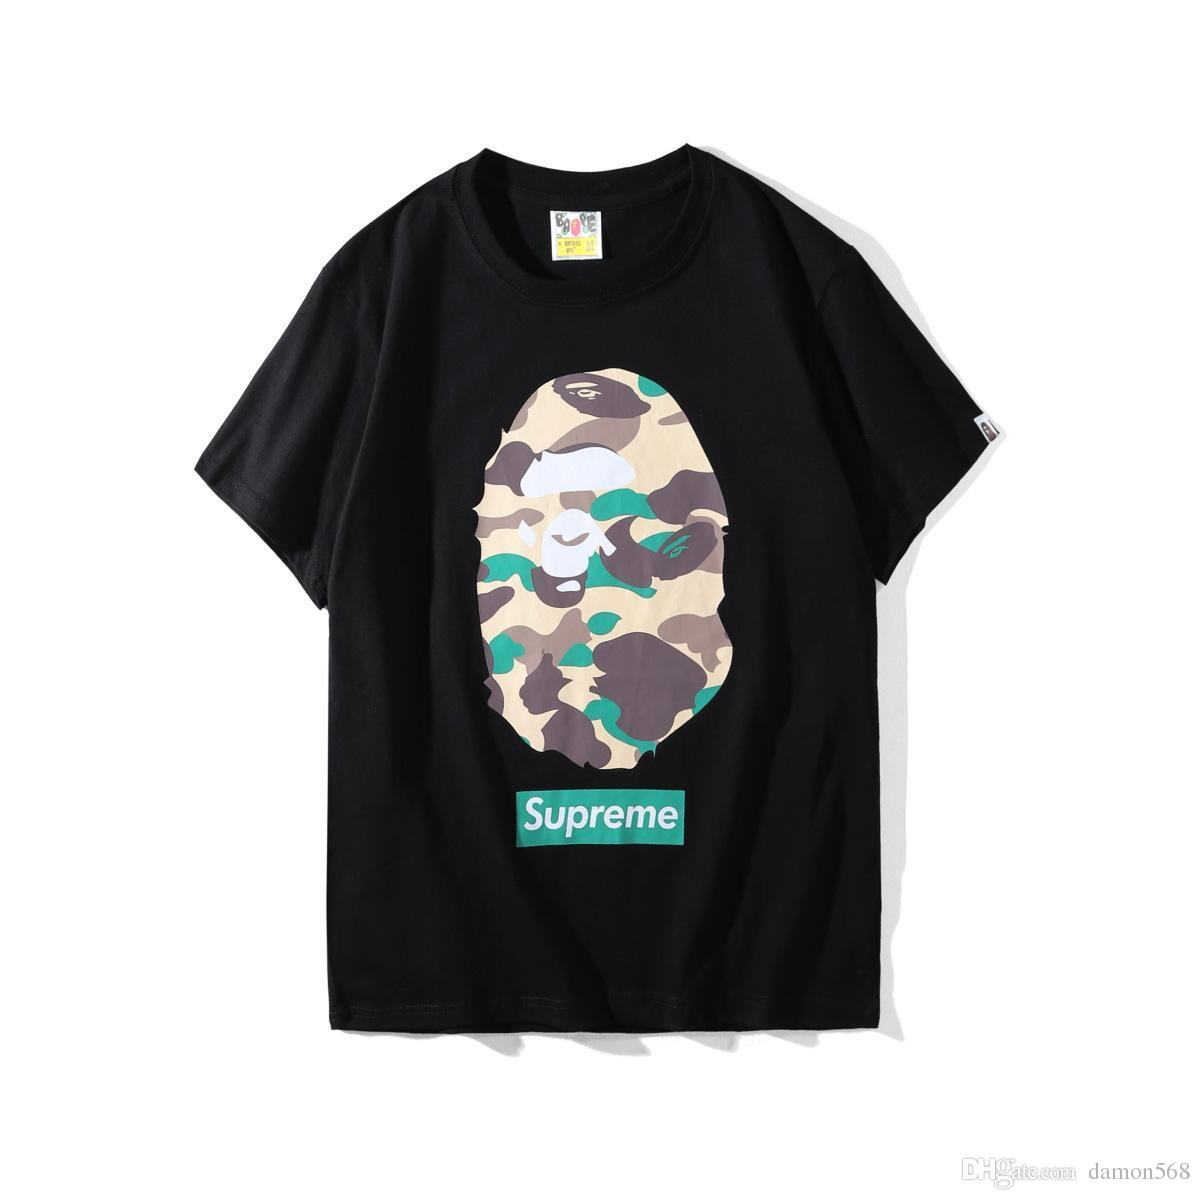 1e051a69 ... For Men'S Wear Animal Printing Black And White Body Repair Street  Fashion T Shirt Printing Half Sleeve Of Fashion Trend Best Designer T Shirts  Funny ...